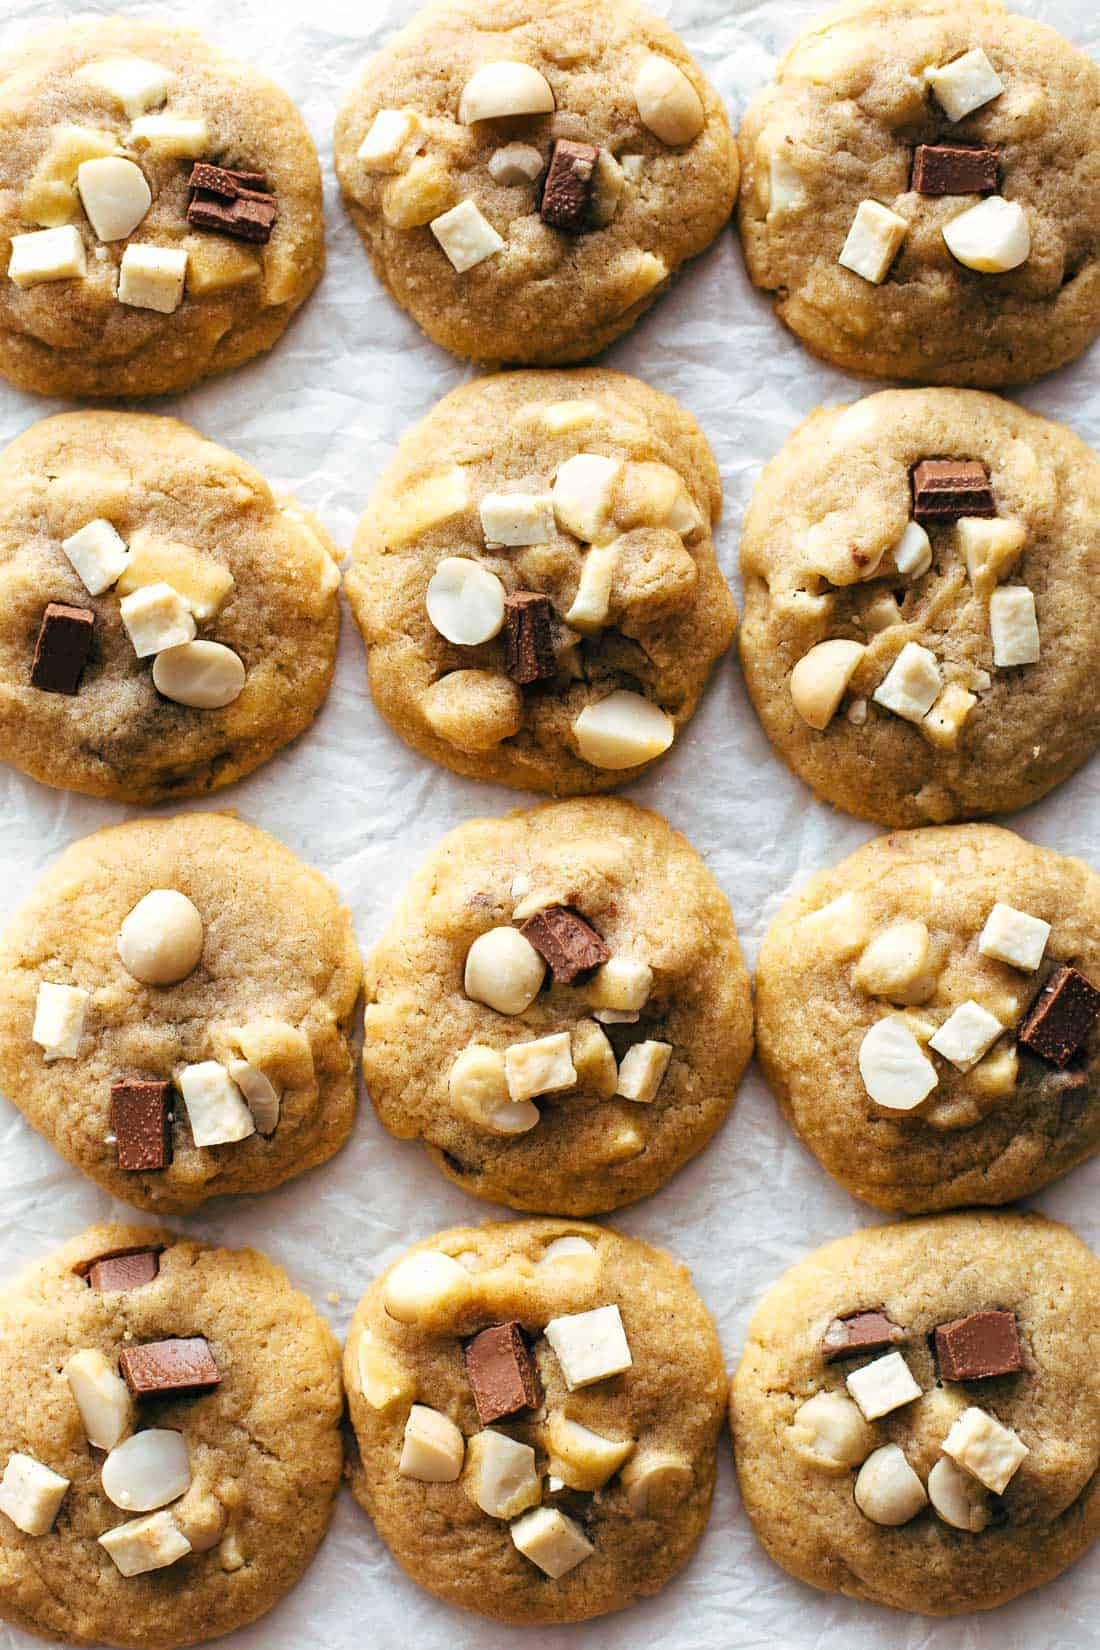 Chocolate Macadamia Cookies